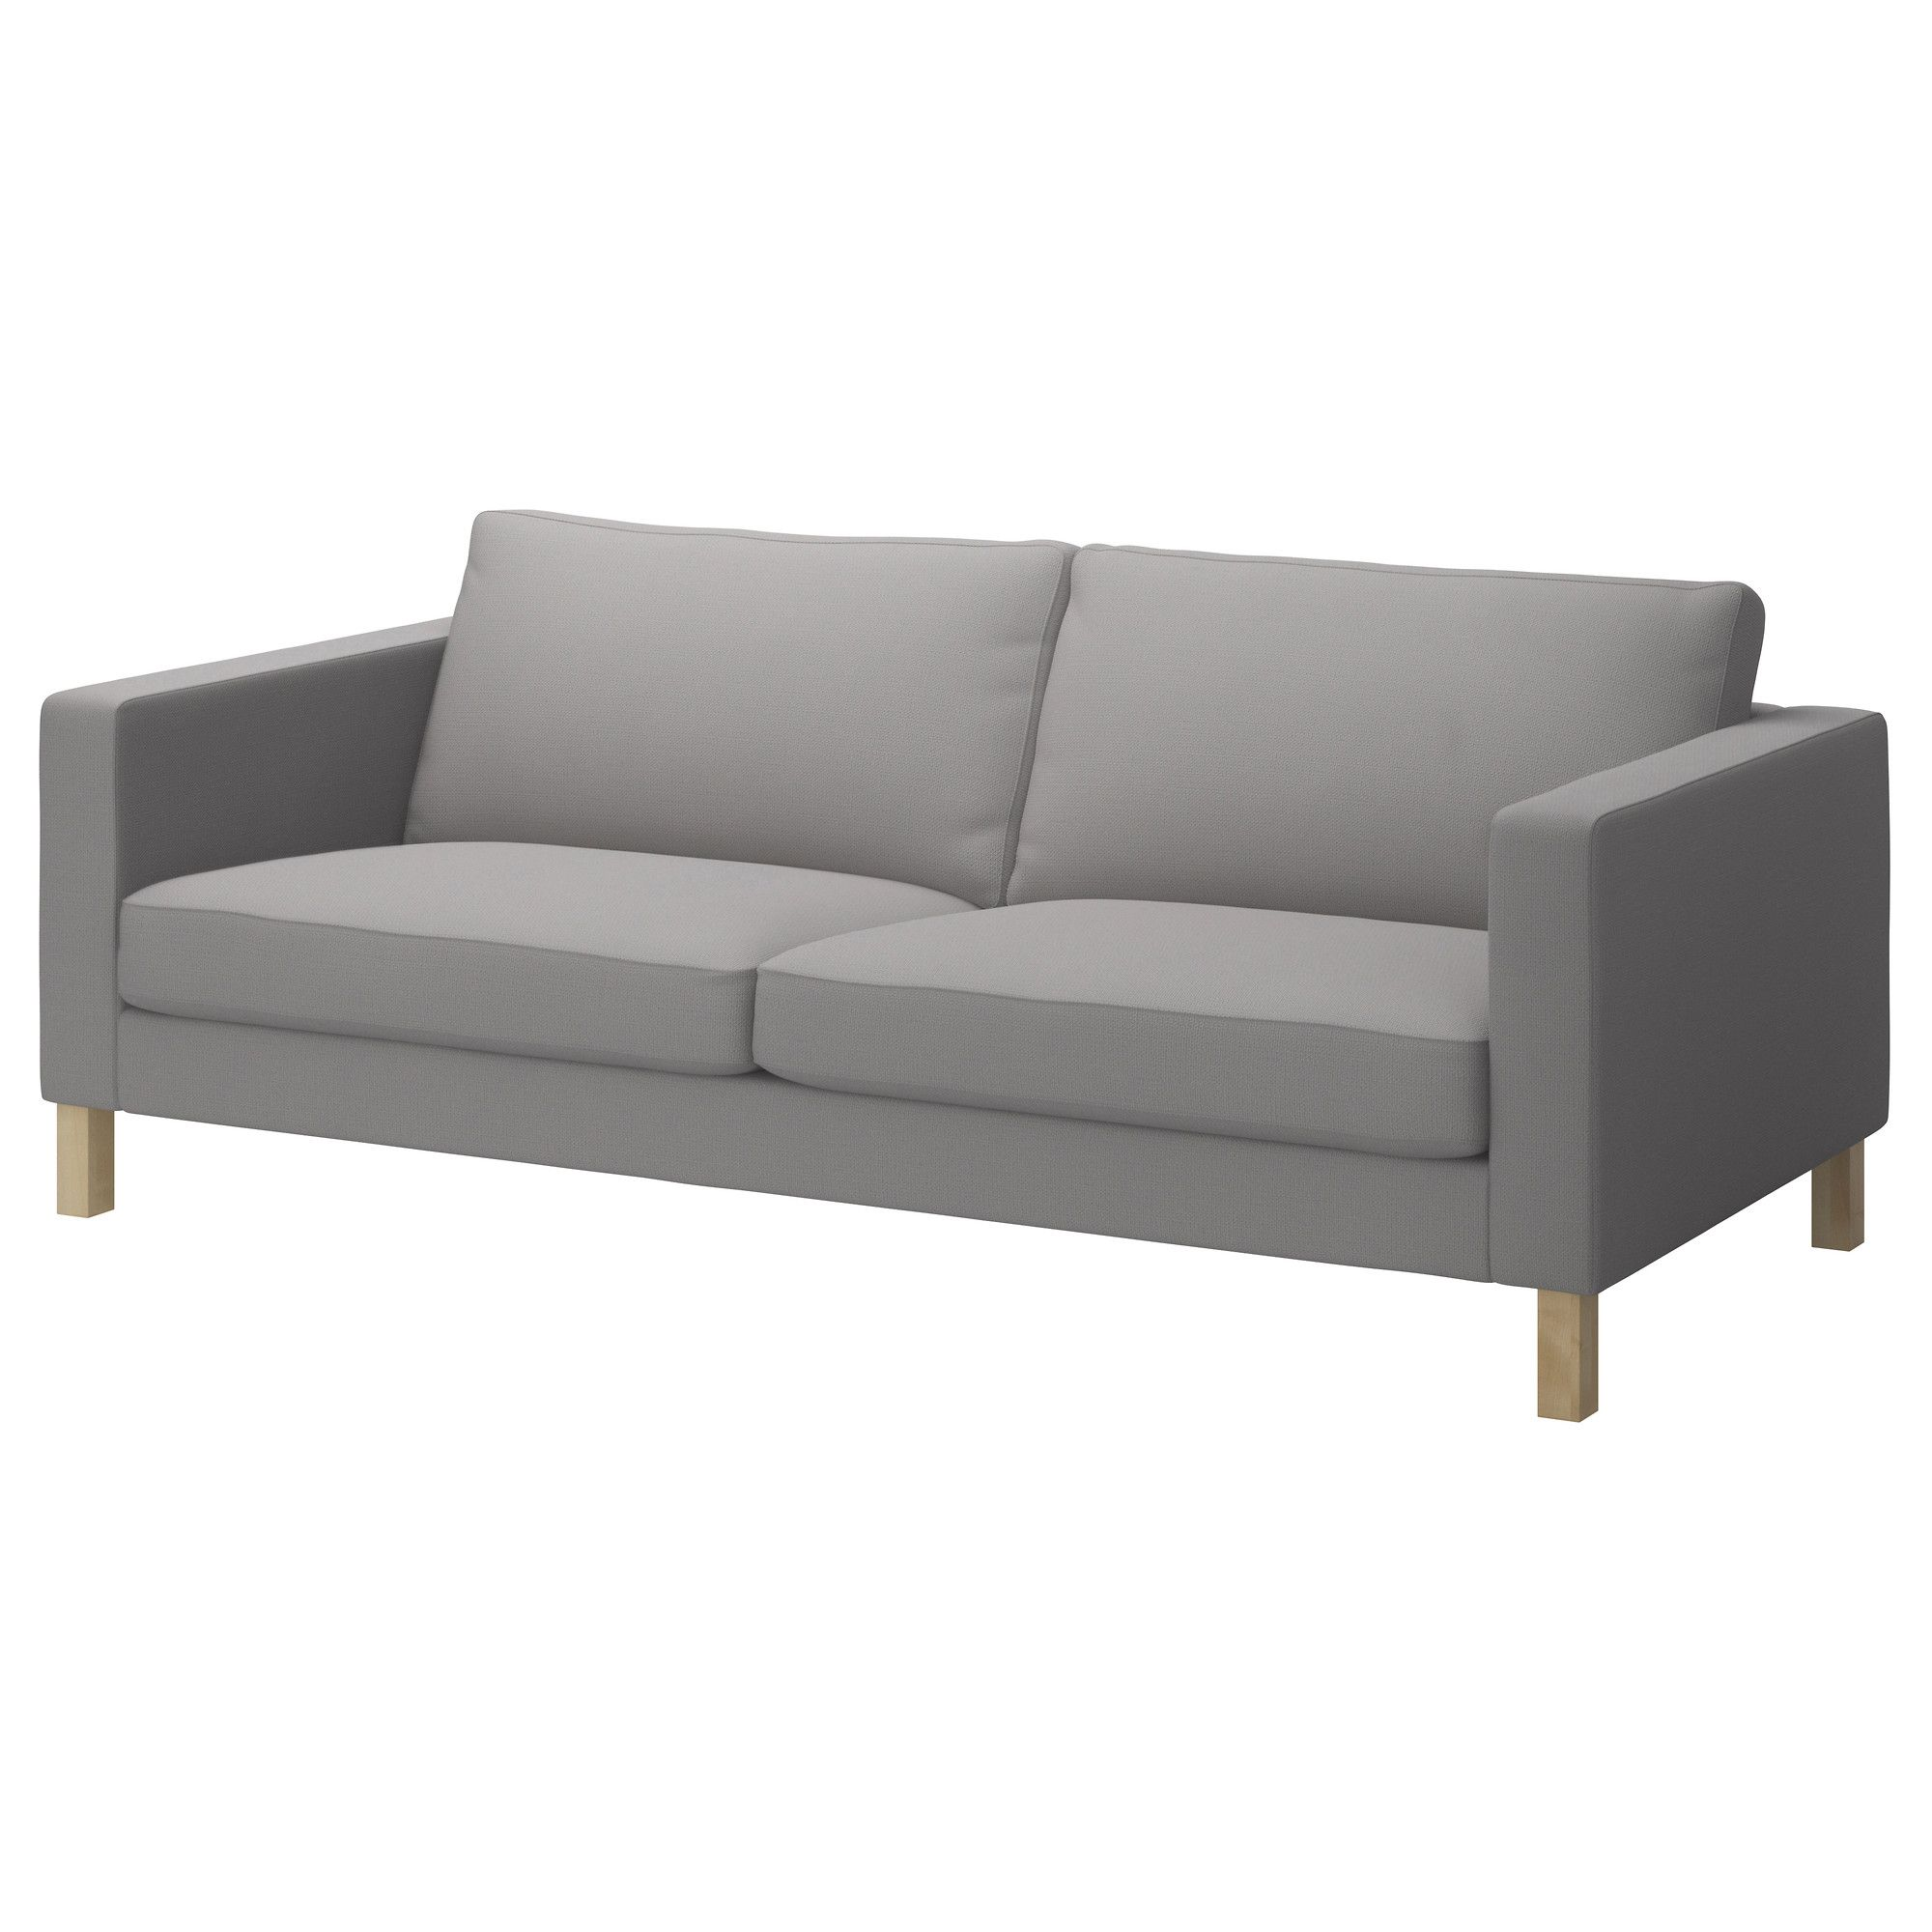 Shop For Furniture Home Accessories More Ikea Couch Karlstad Sofa Ikea Sofa